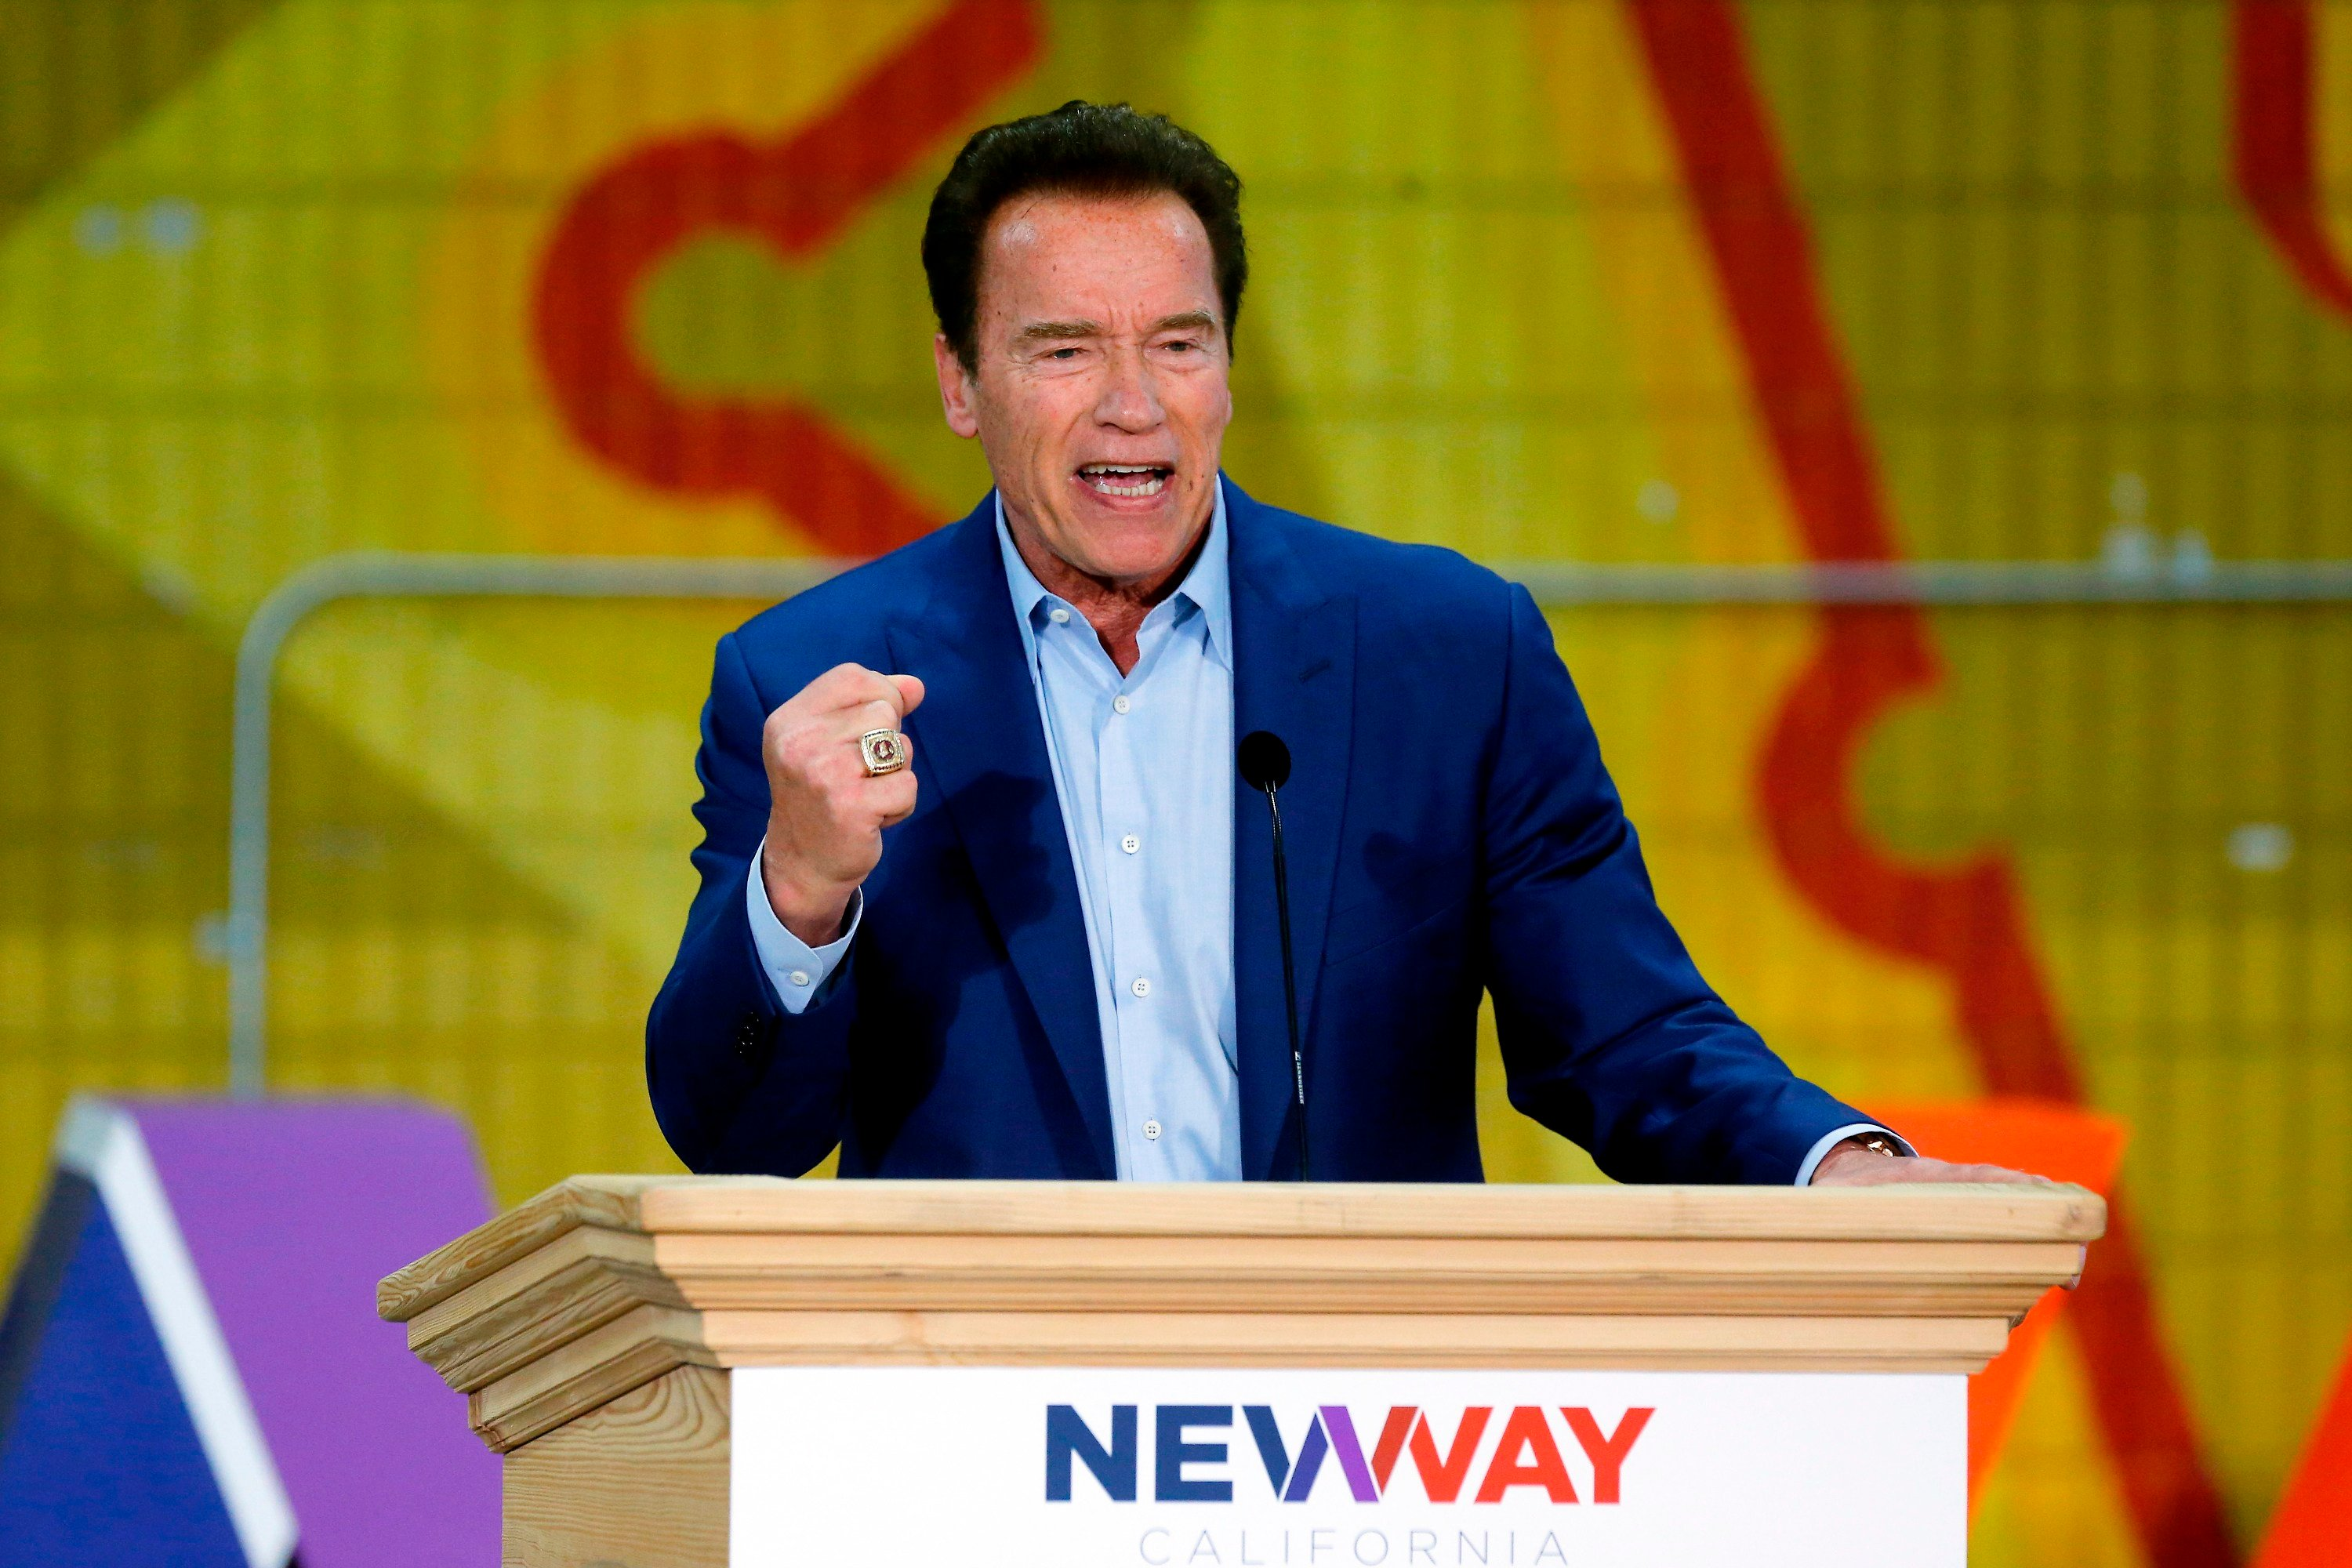 Former California Gov. Arnold Schwarzenegger speaks at the first New Way California Summit in Los Angeles Wednesday, March 21, 2018.